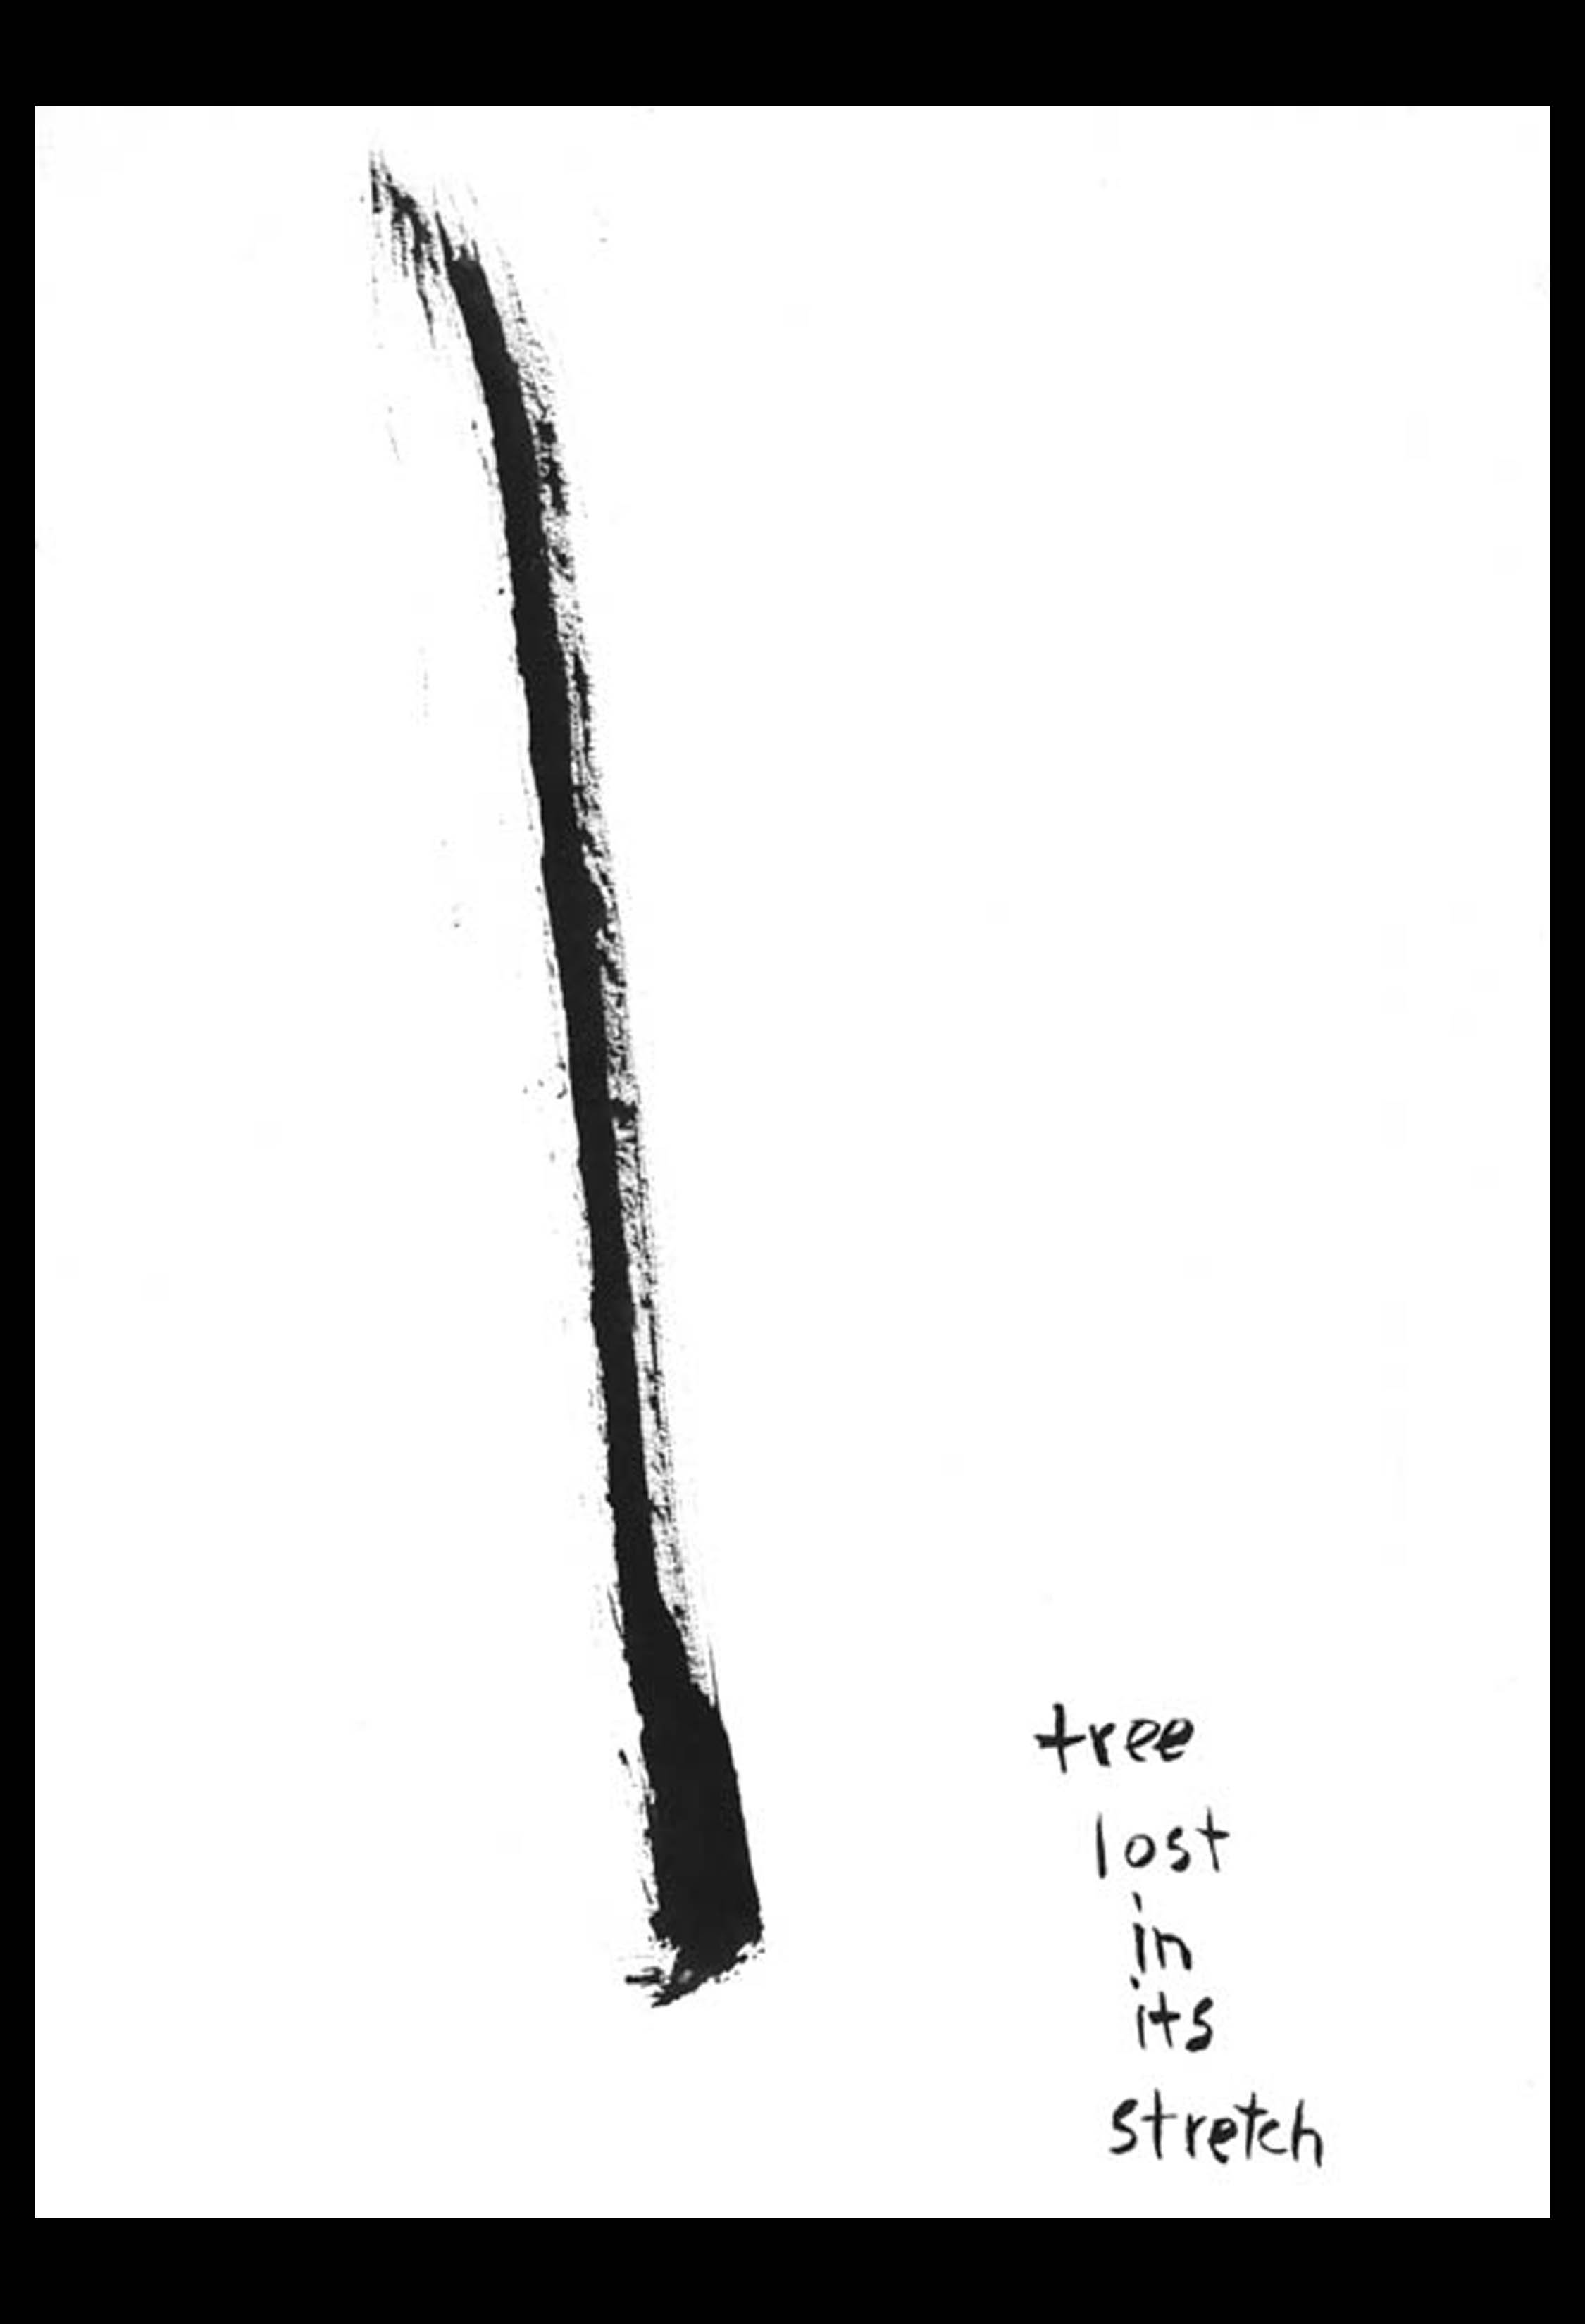 tree lost (1968 or 1969)